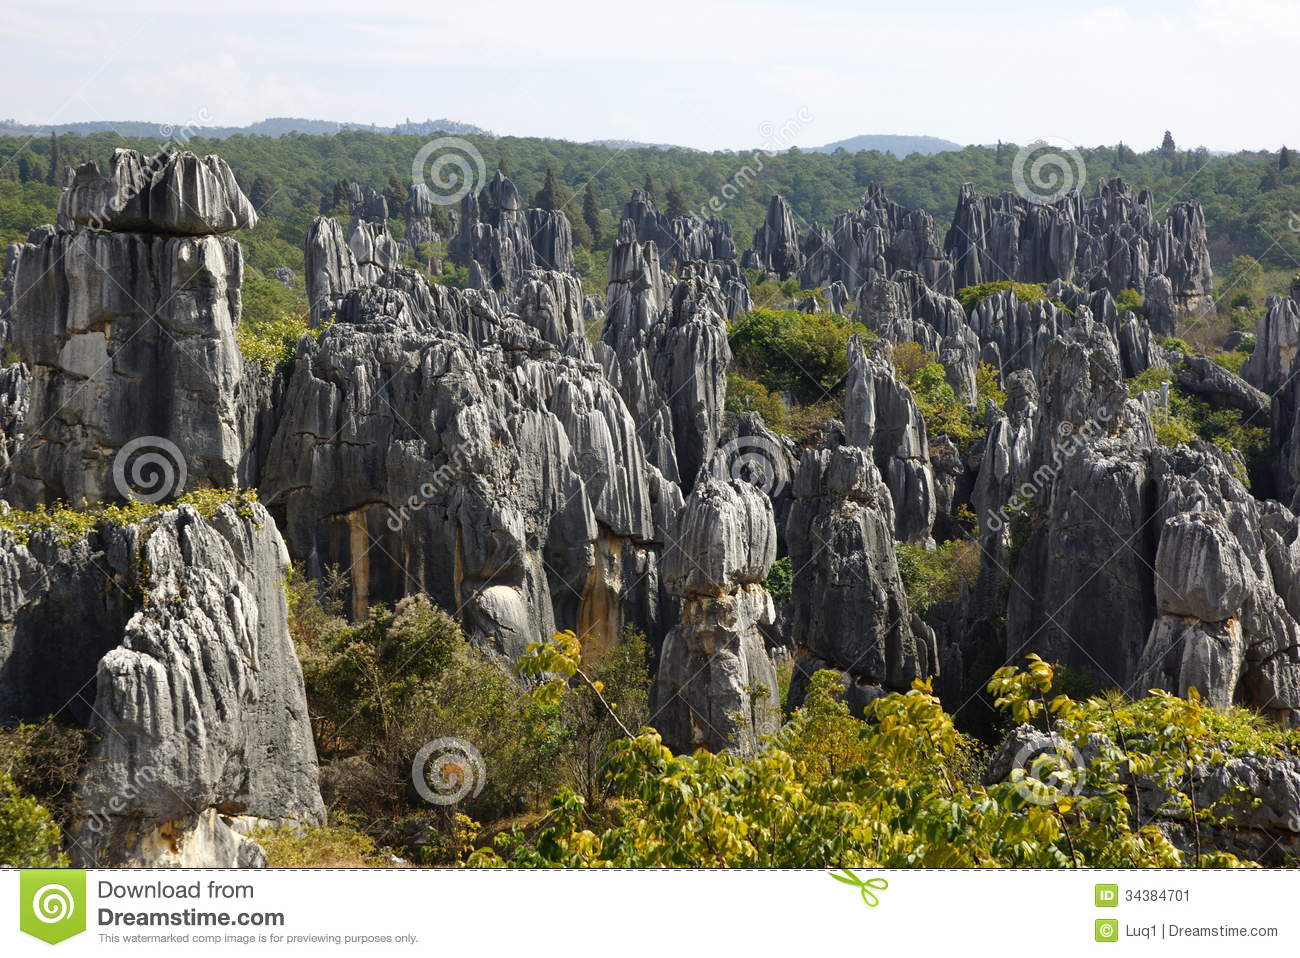 Shilin Stone Forest in Kunming, Yunnan, China